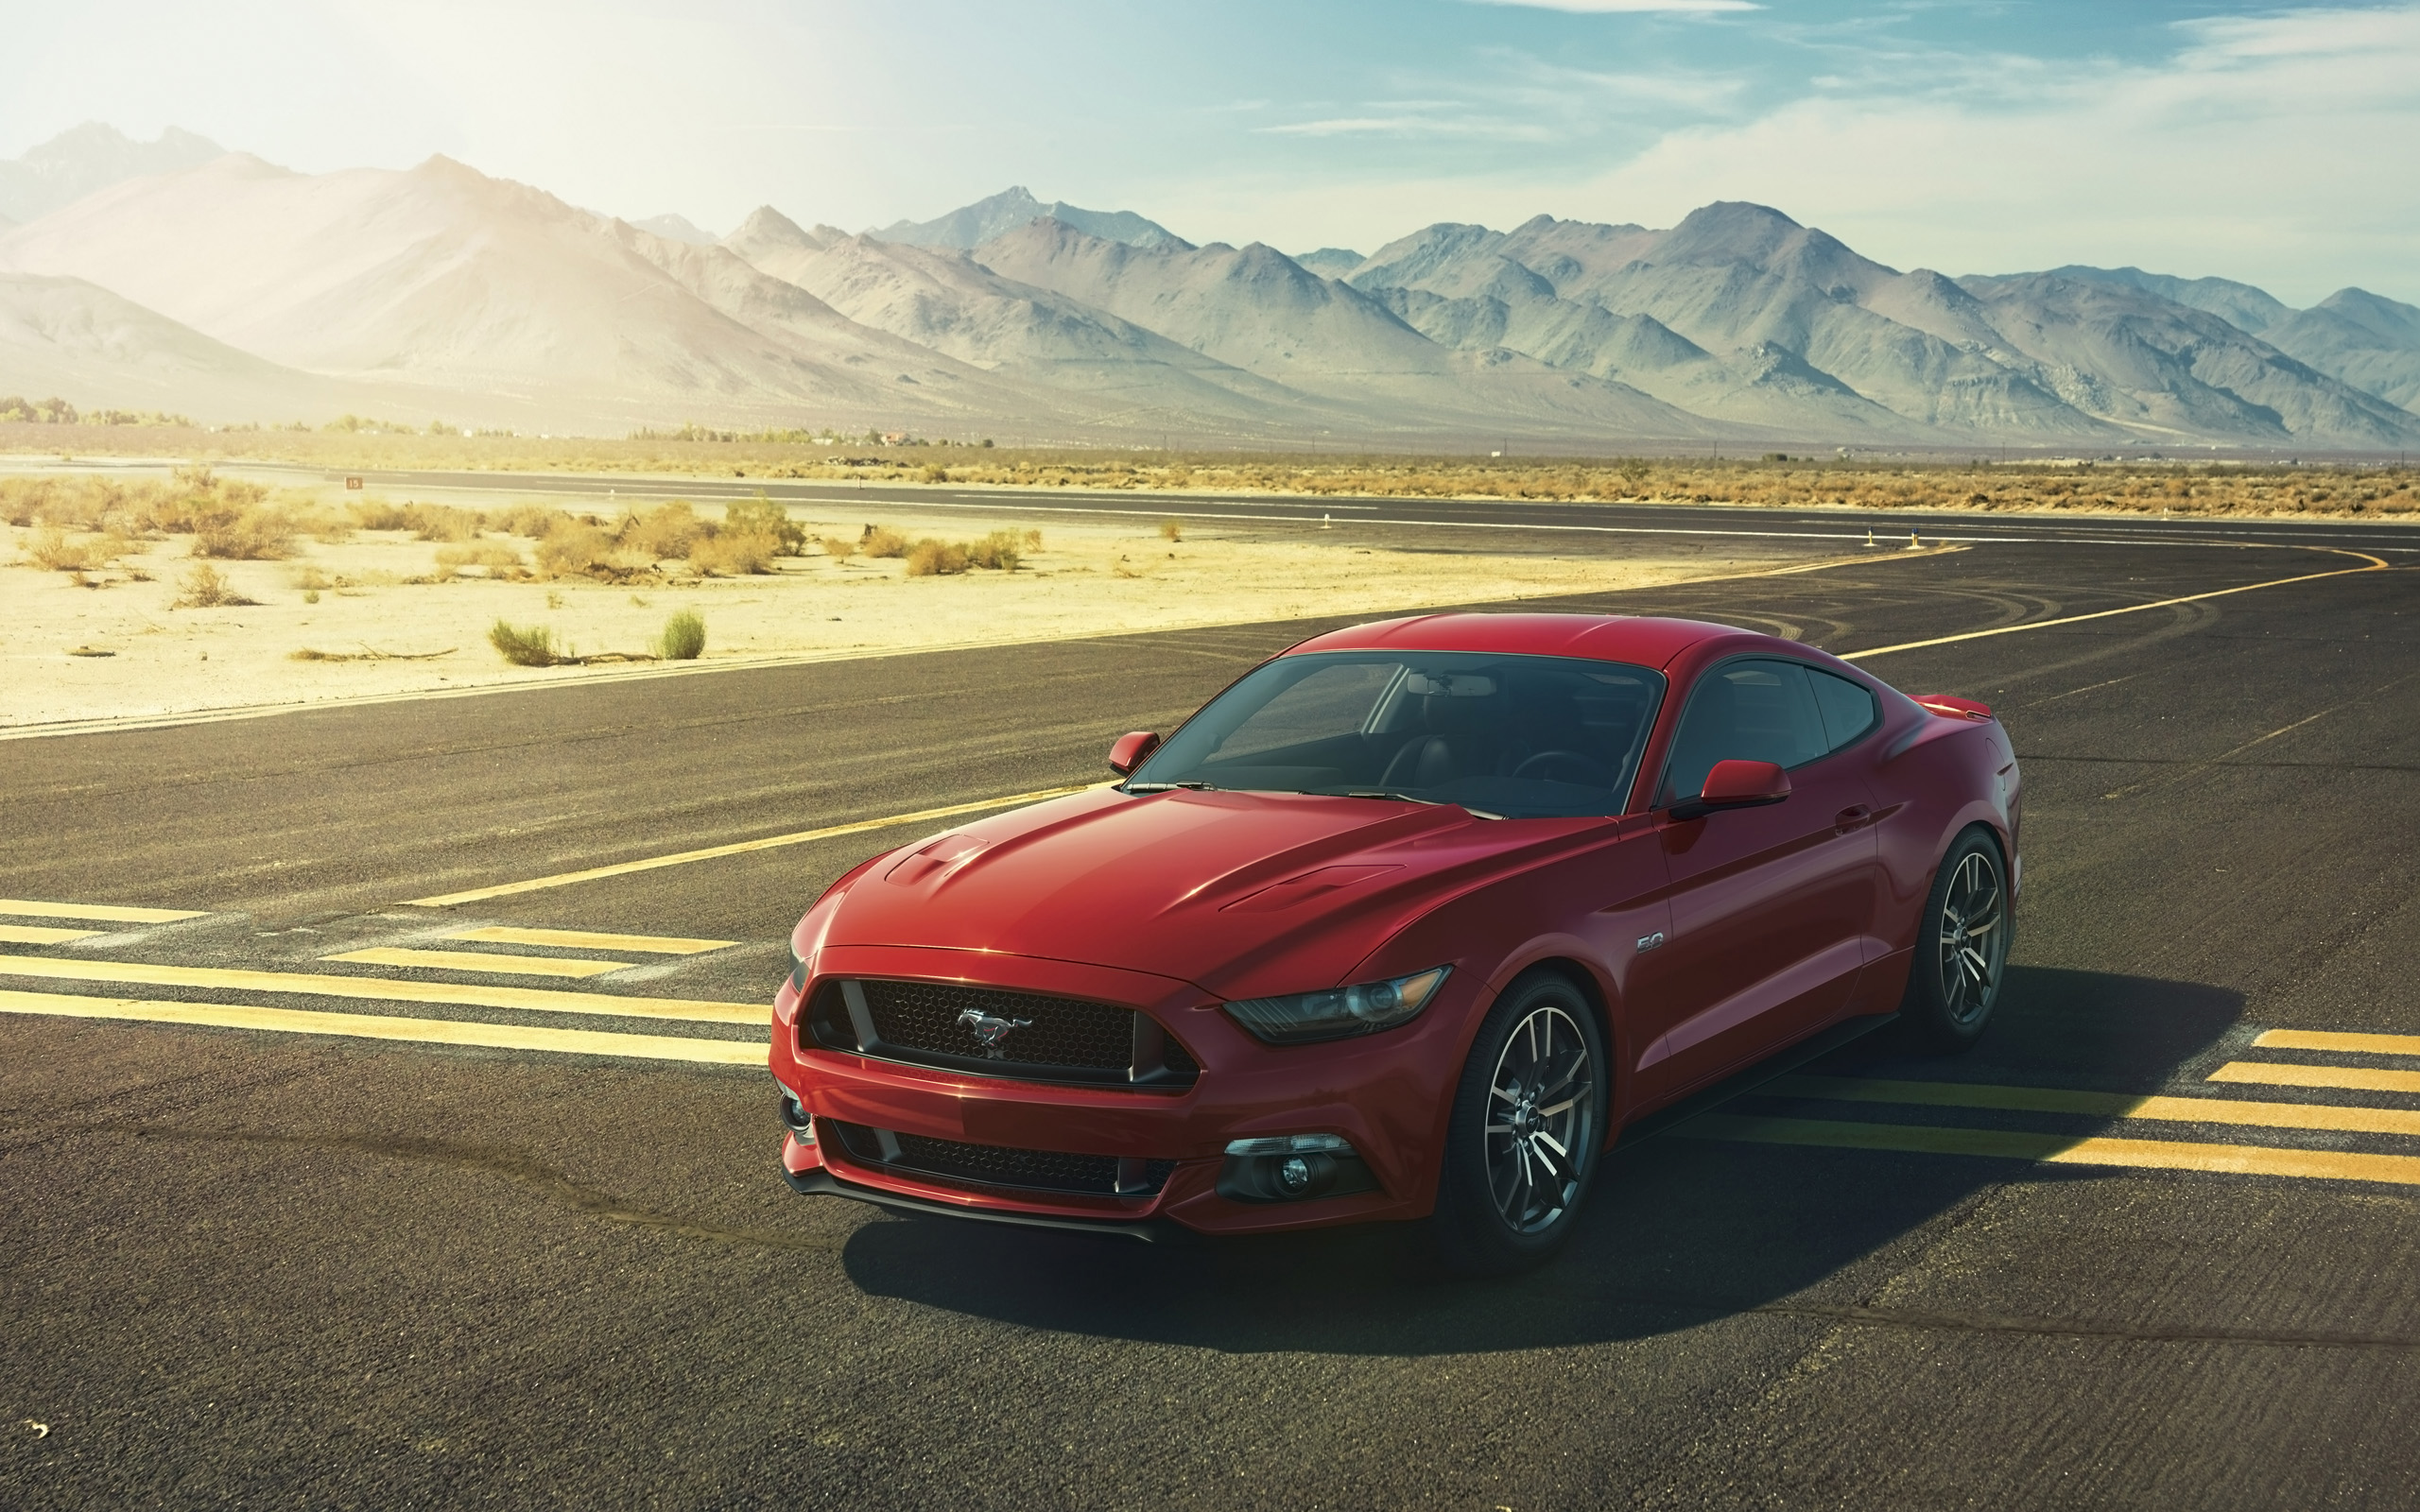 Ford Mustang 2015 Wallpaper for iPhone